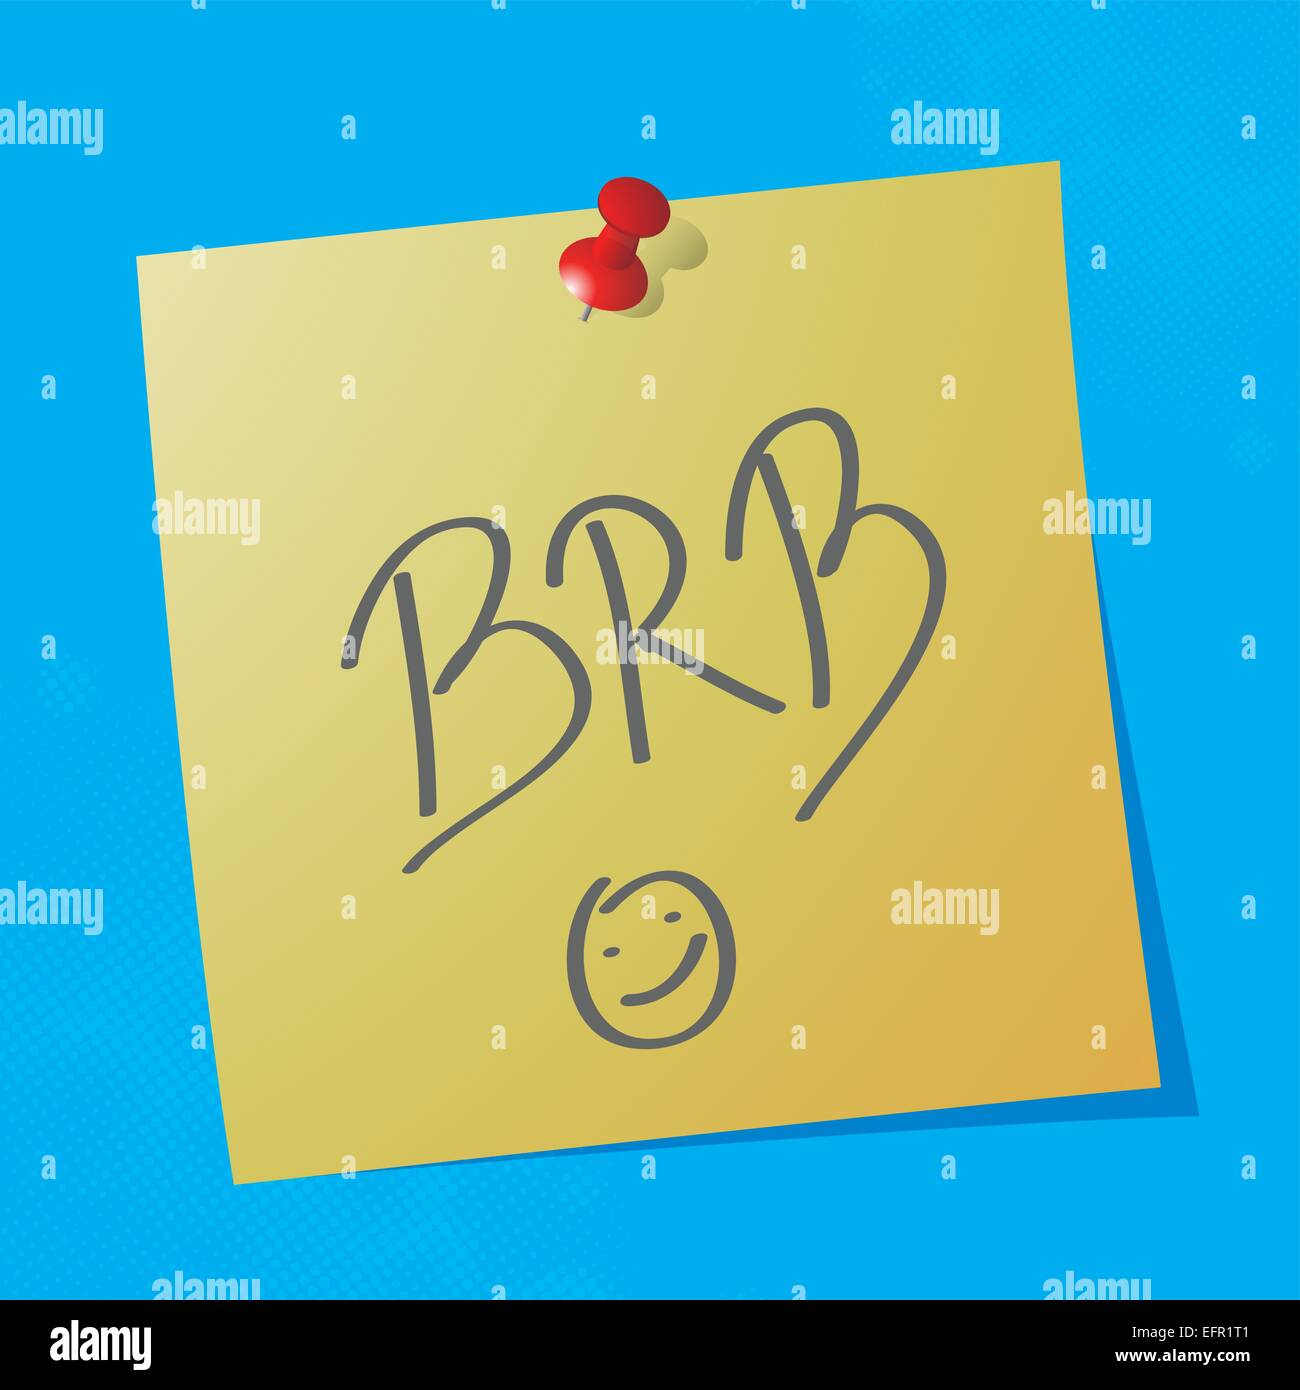 brb handwritten acronym message on sticky paper, eps10 vector illustration - Stock Vector